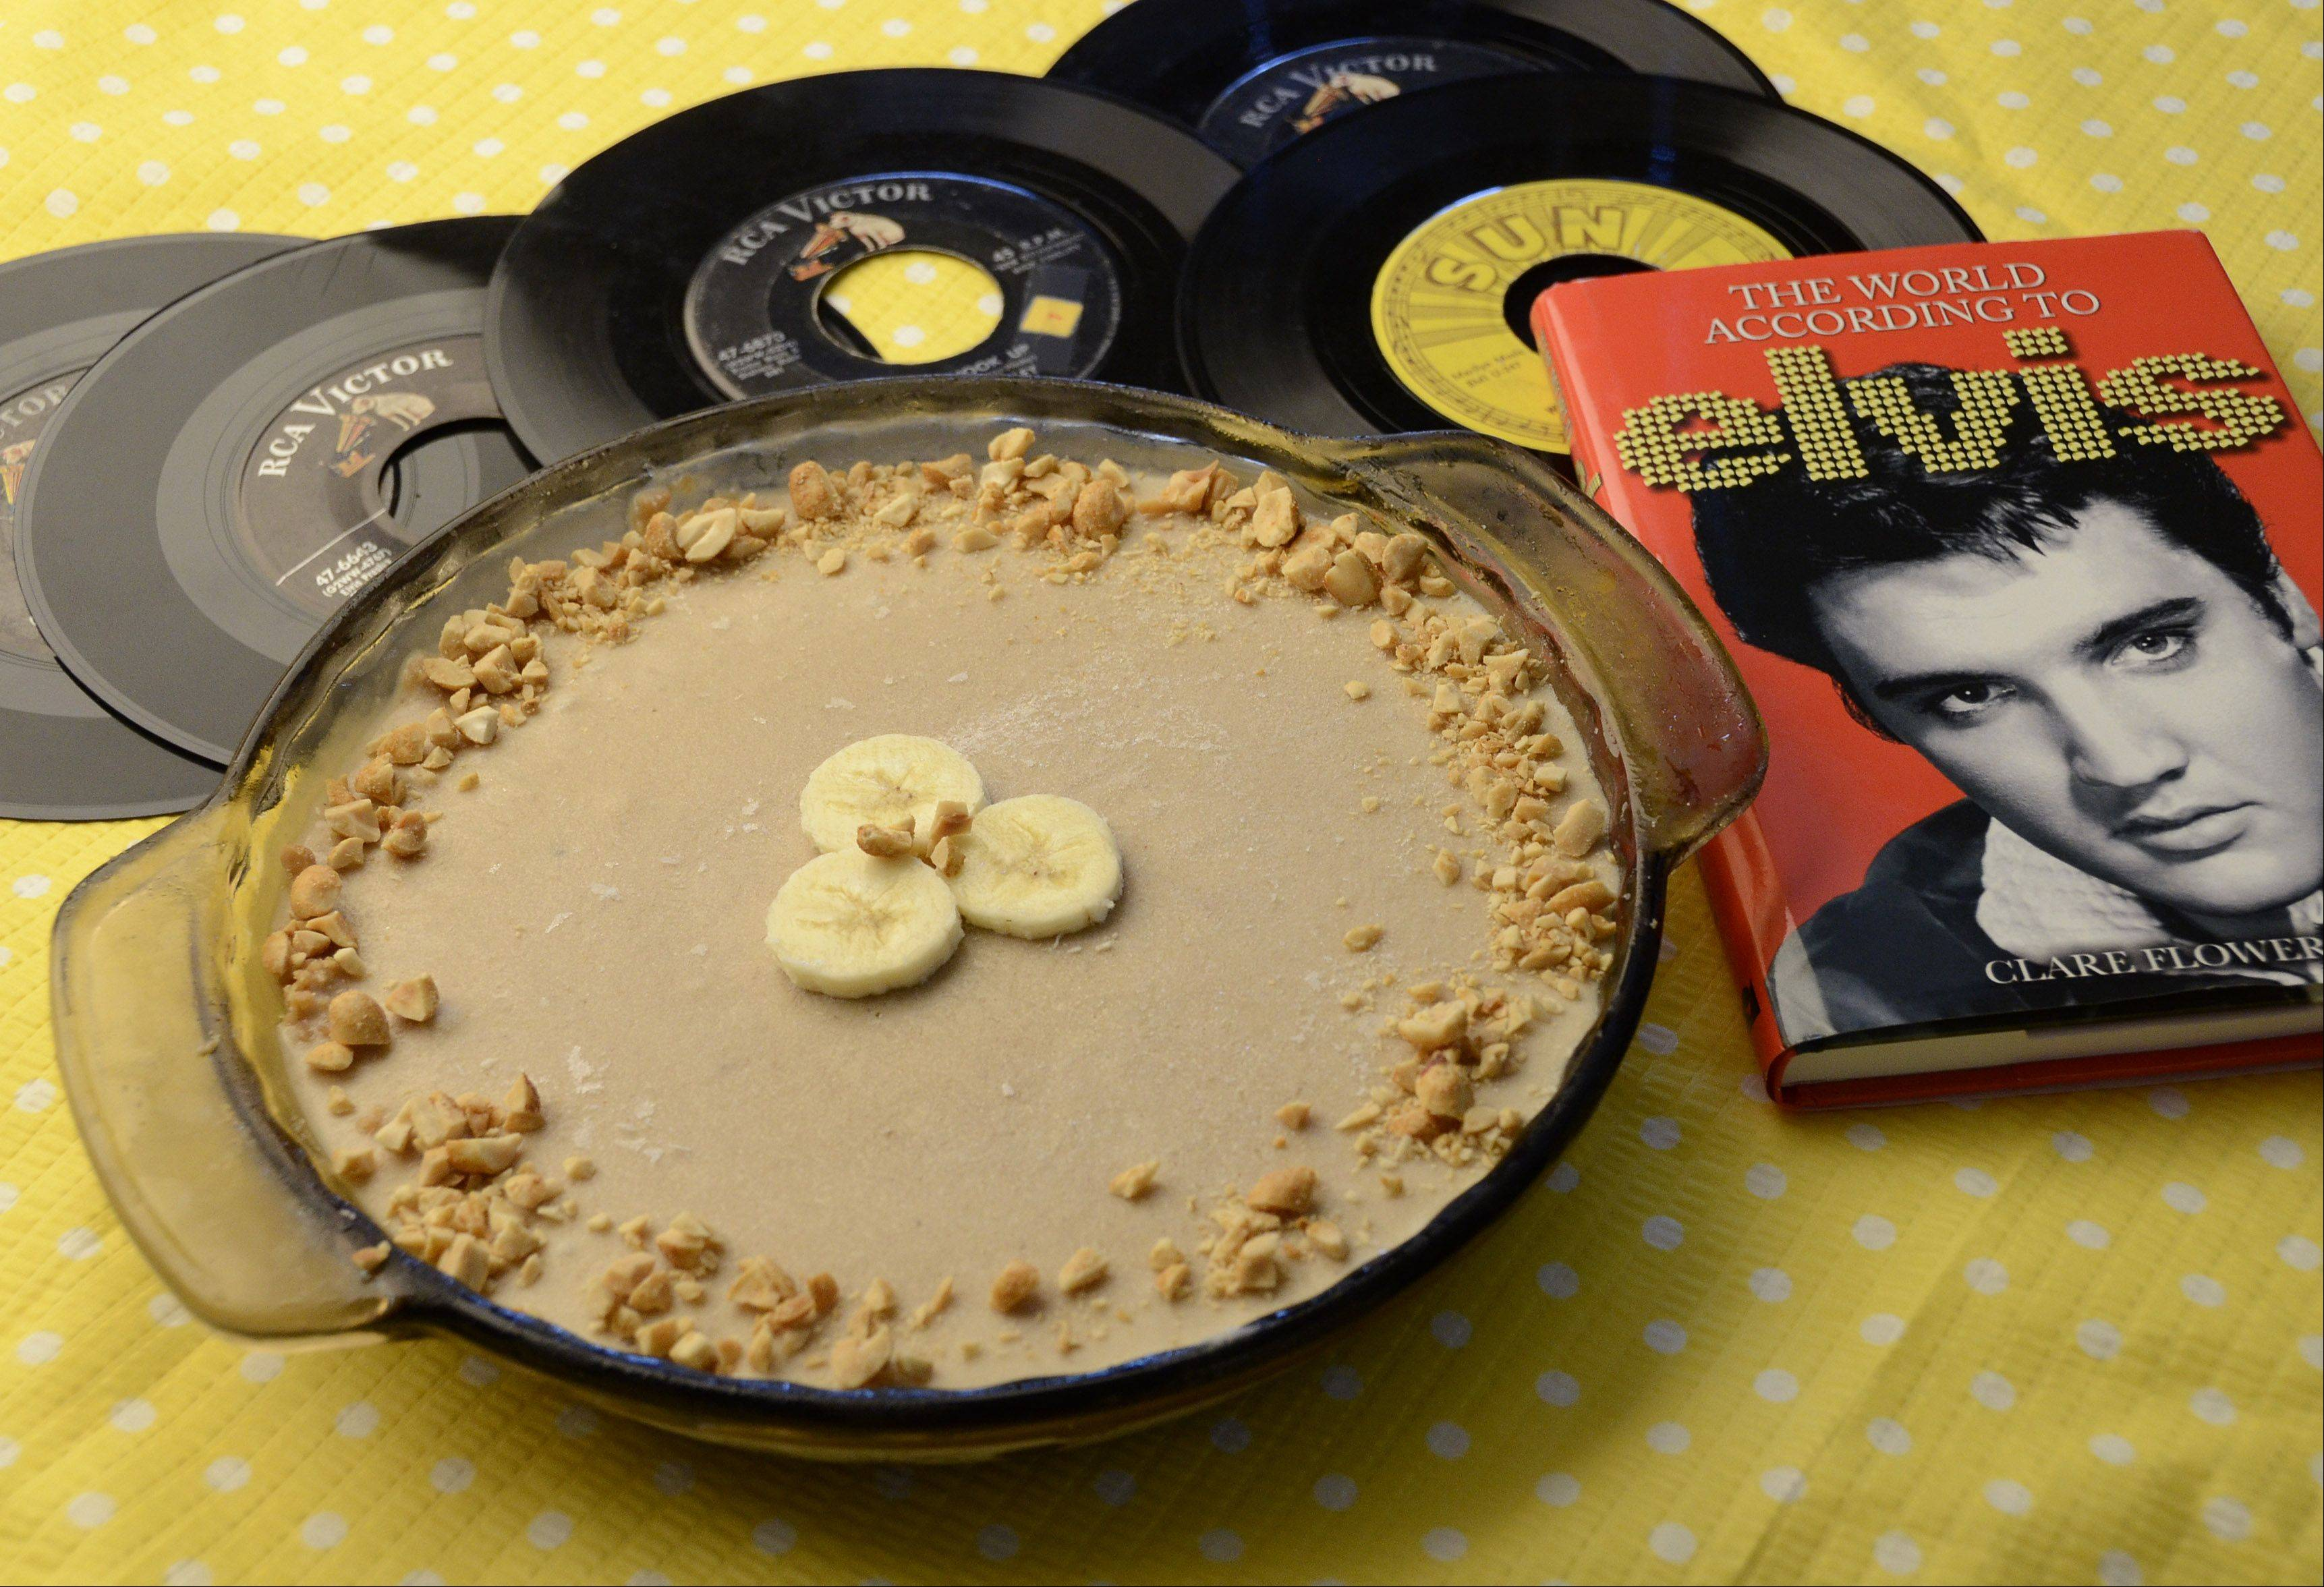 What better Elvis tribute than peanut butter and banana?